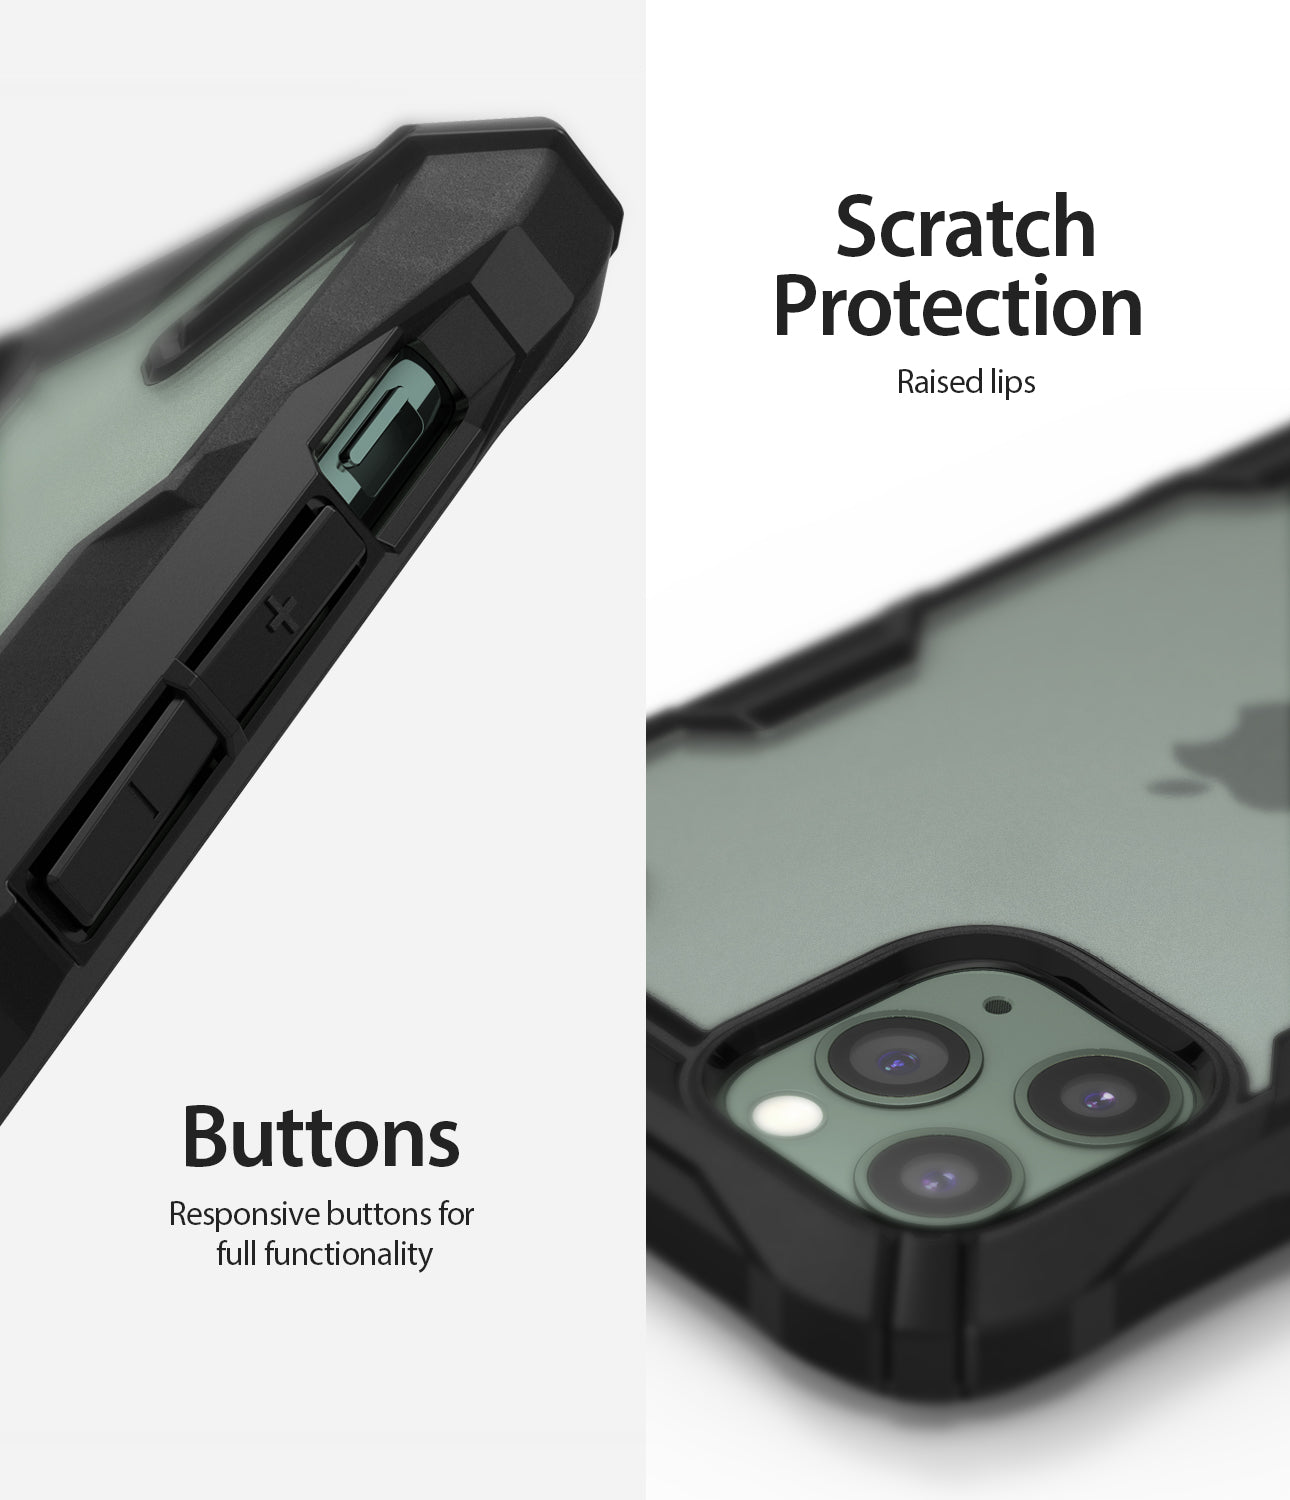 Ringke Fusion-X Matte Designed Case for iPhone 11 Pro Matte Dark Green raised bezel scratch protection buttons